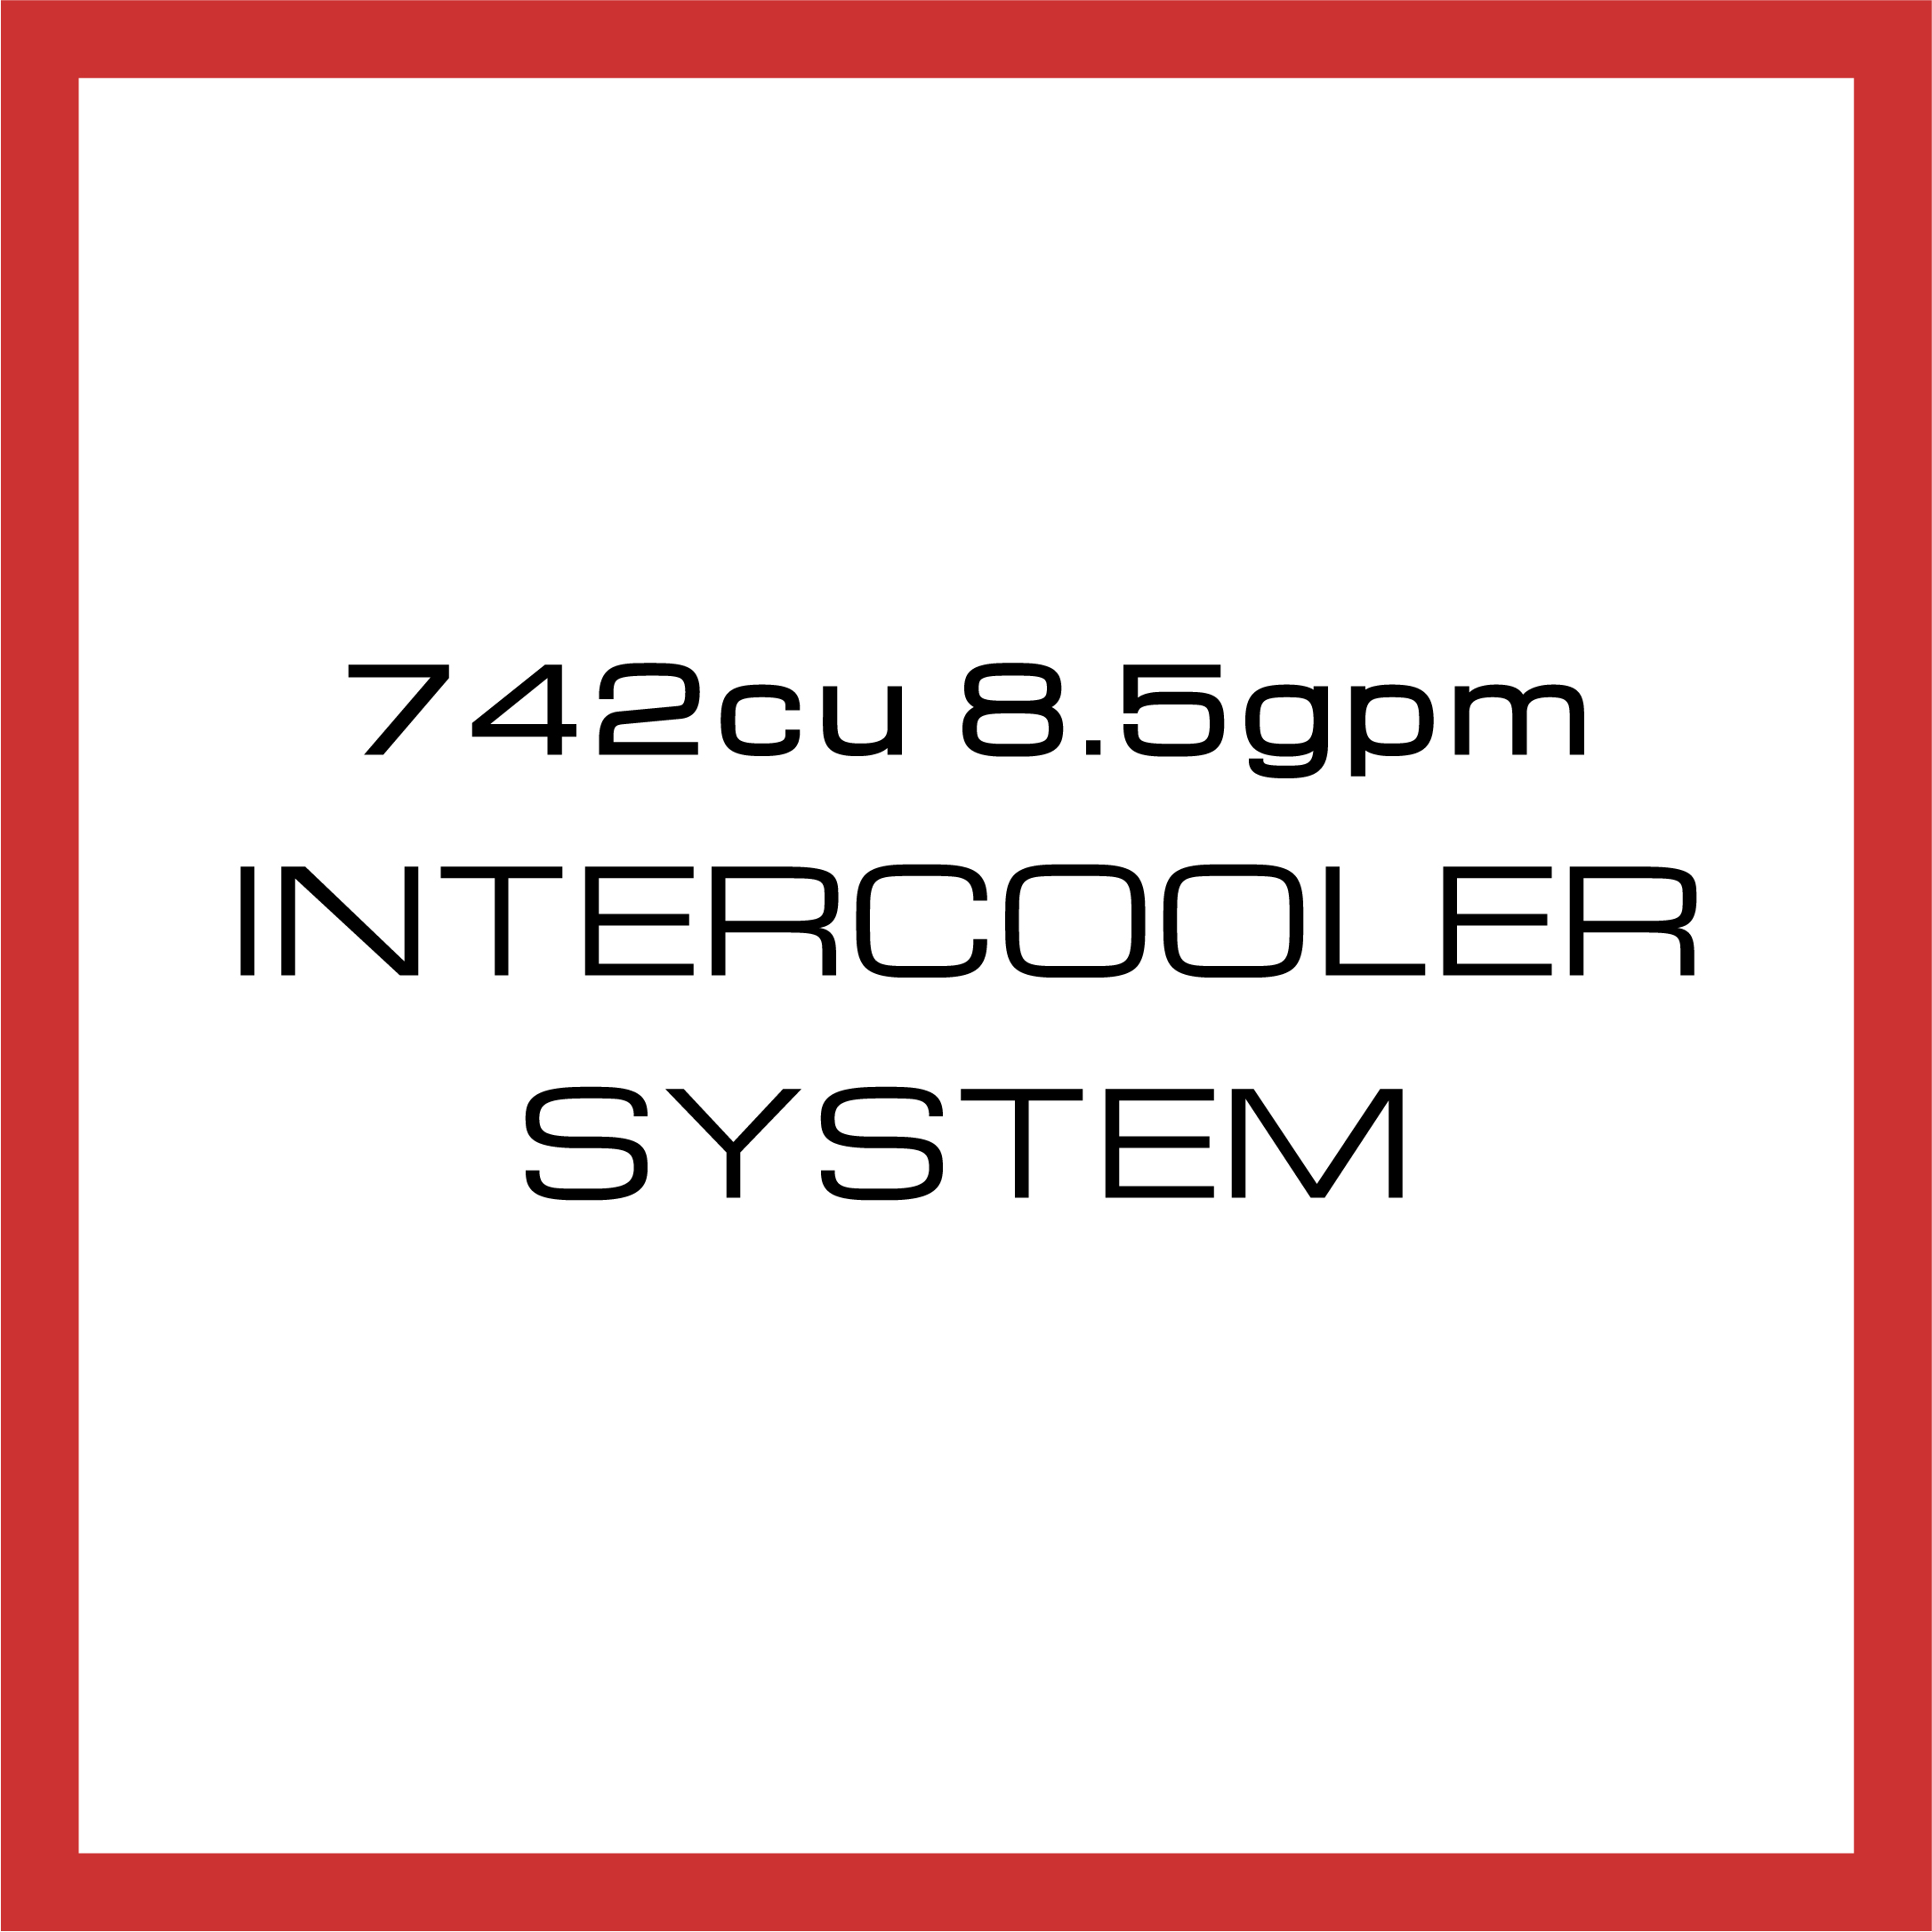 Department Of Boost Super Single 742cu in 8.5gpm Intercooler System Upgrade Package